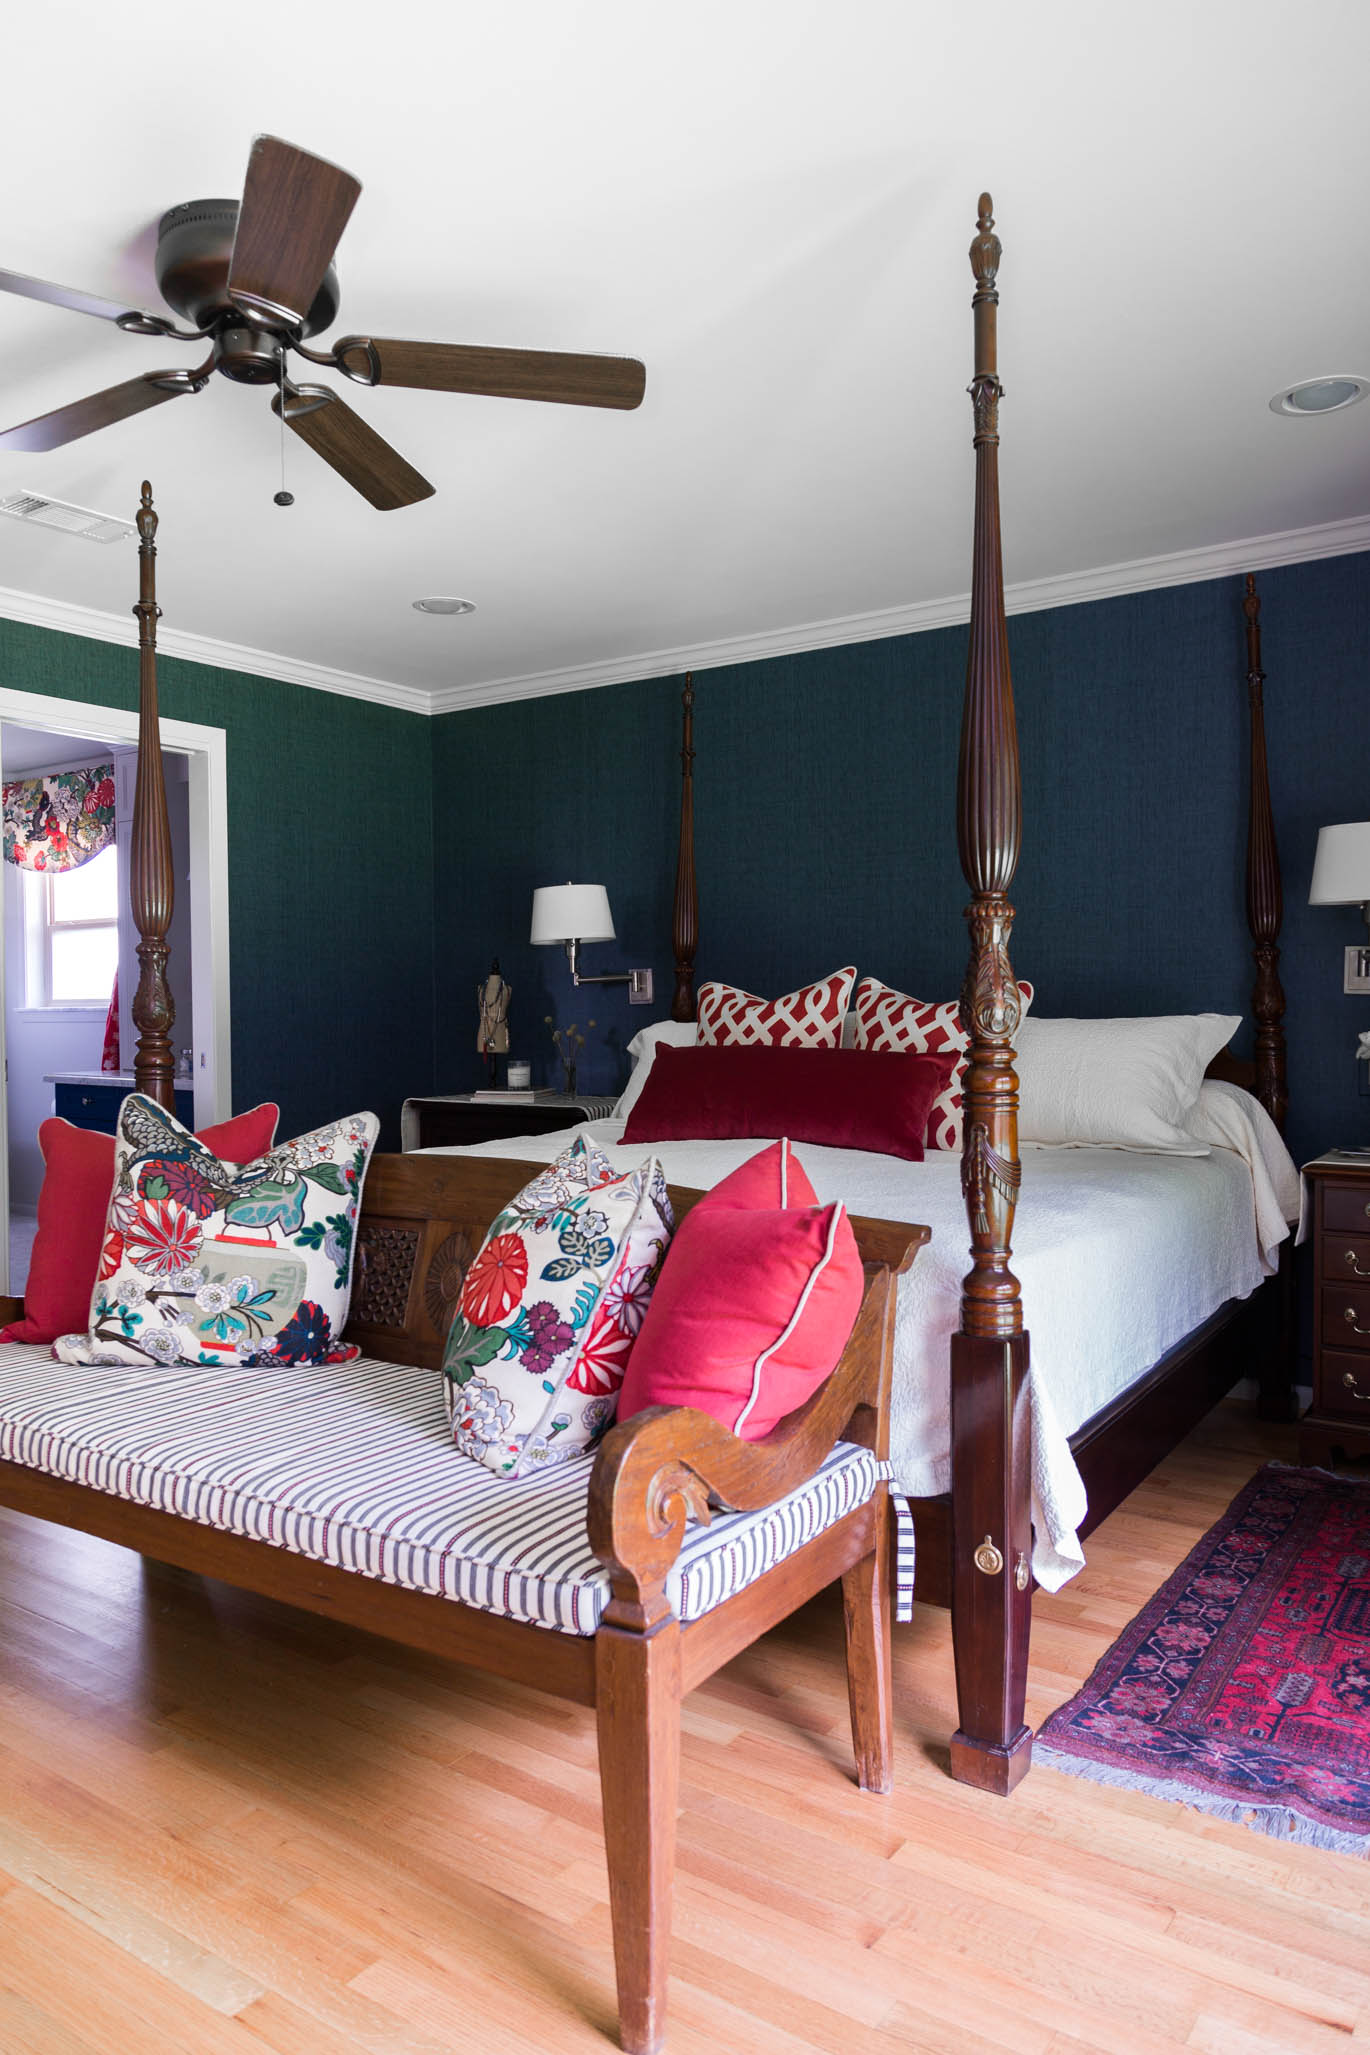 Bedroom makeover with navy grasscloth and colorful pillows with Chiang Mai Dragon fabric   Designer-Carla Aston, Photographer- Tori Aston #grasscloth #fourposterbed